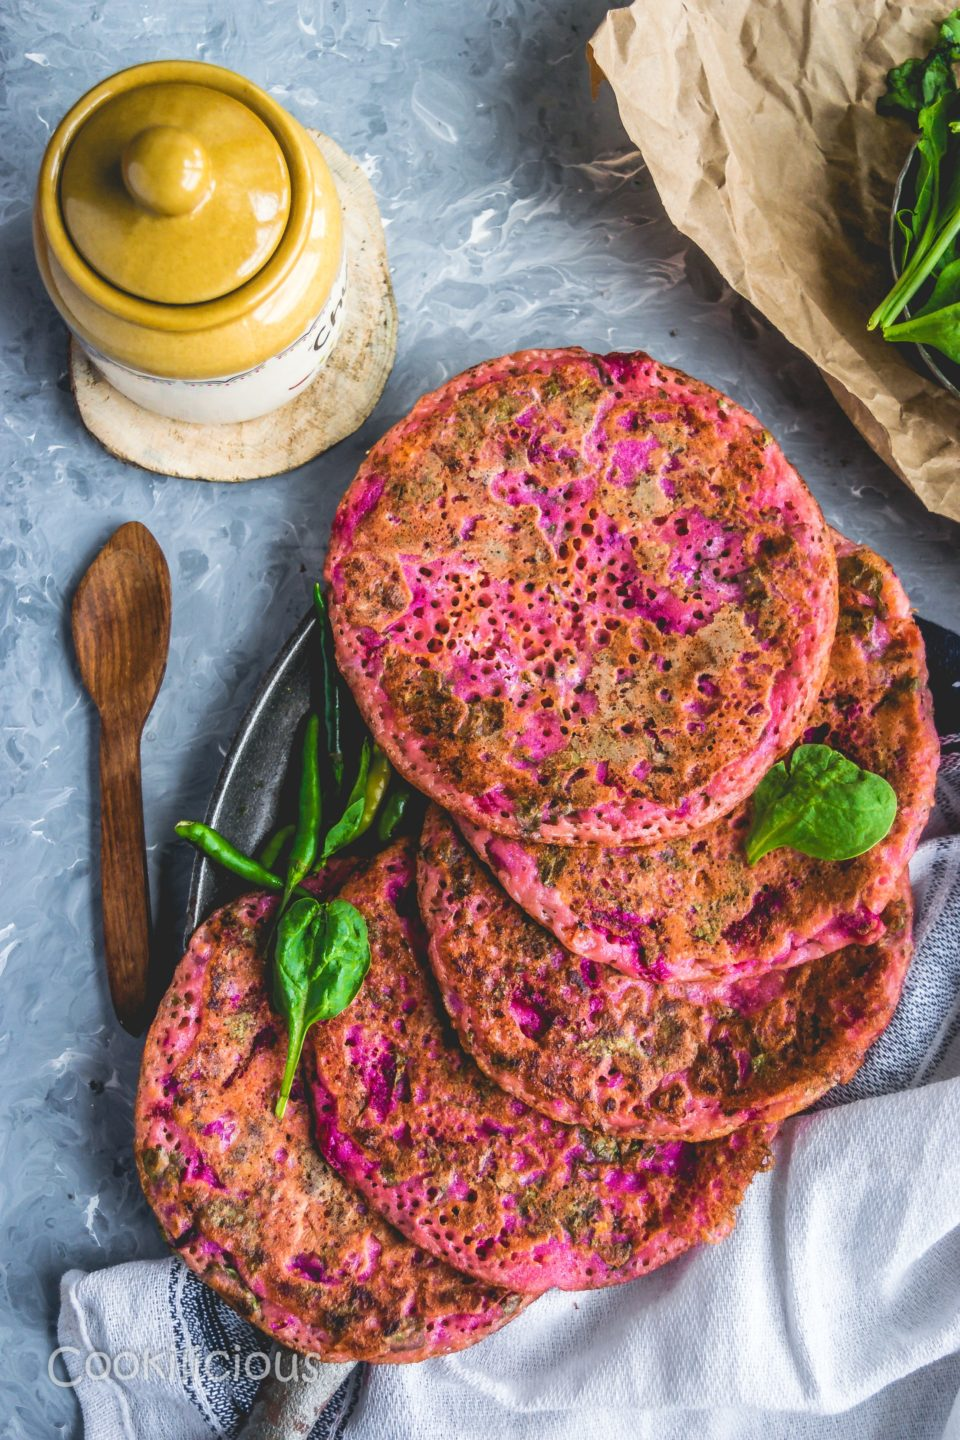 a tray layered with Pink Uttapam with Beets & Veggies with a pickle jar and a wooden spoon around it